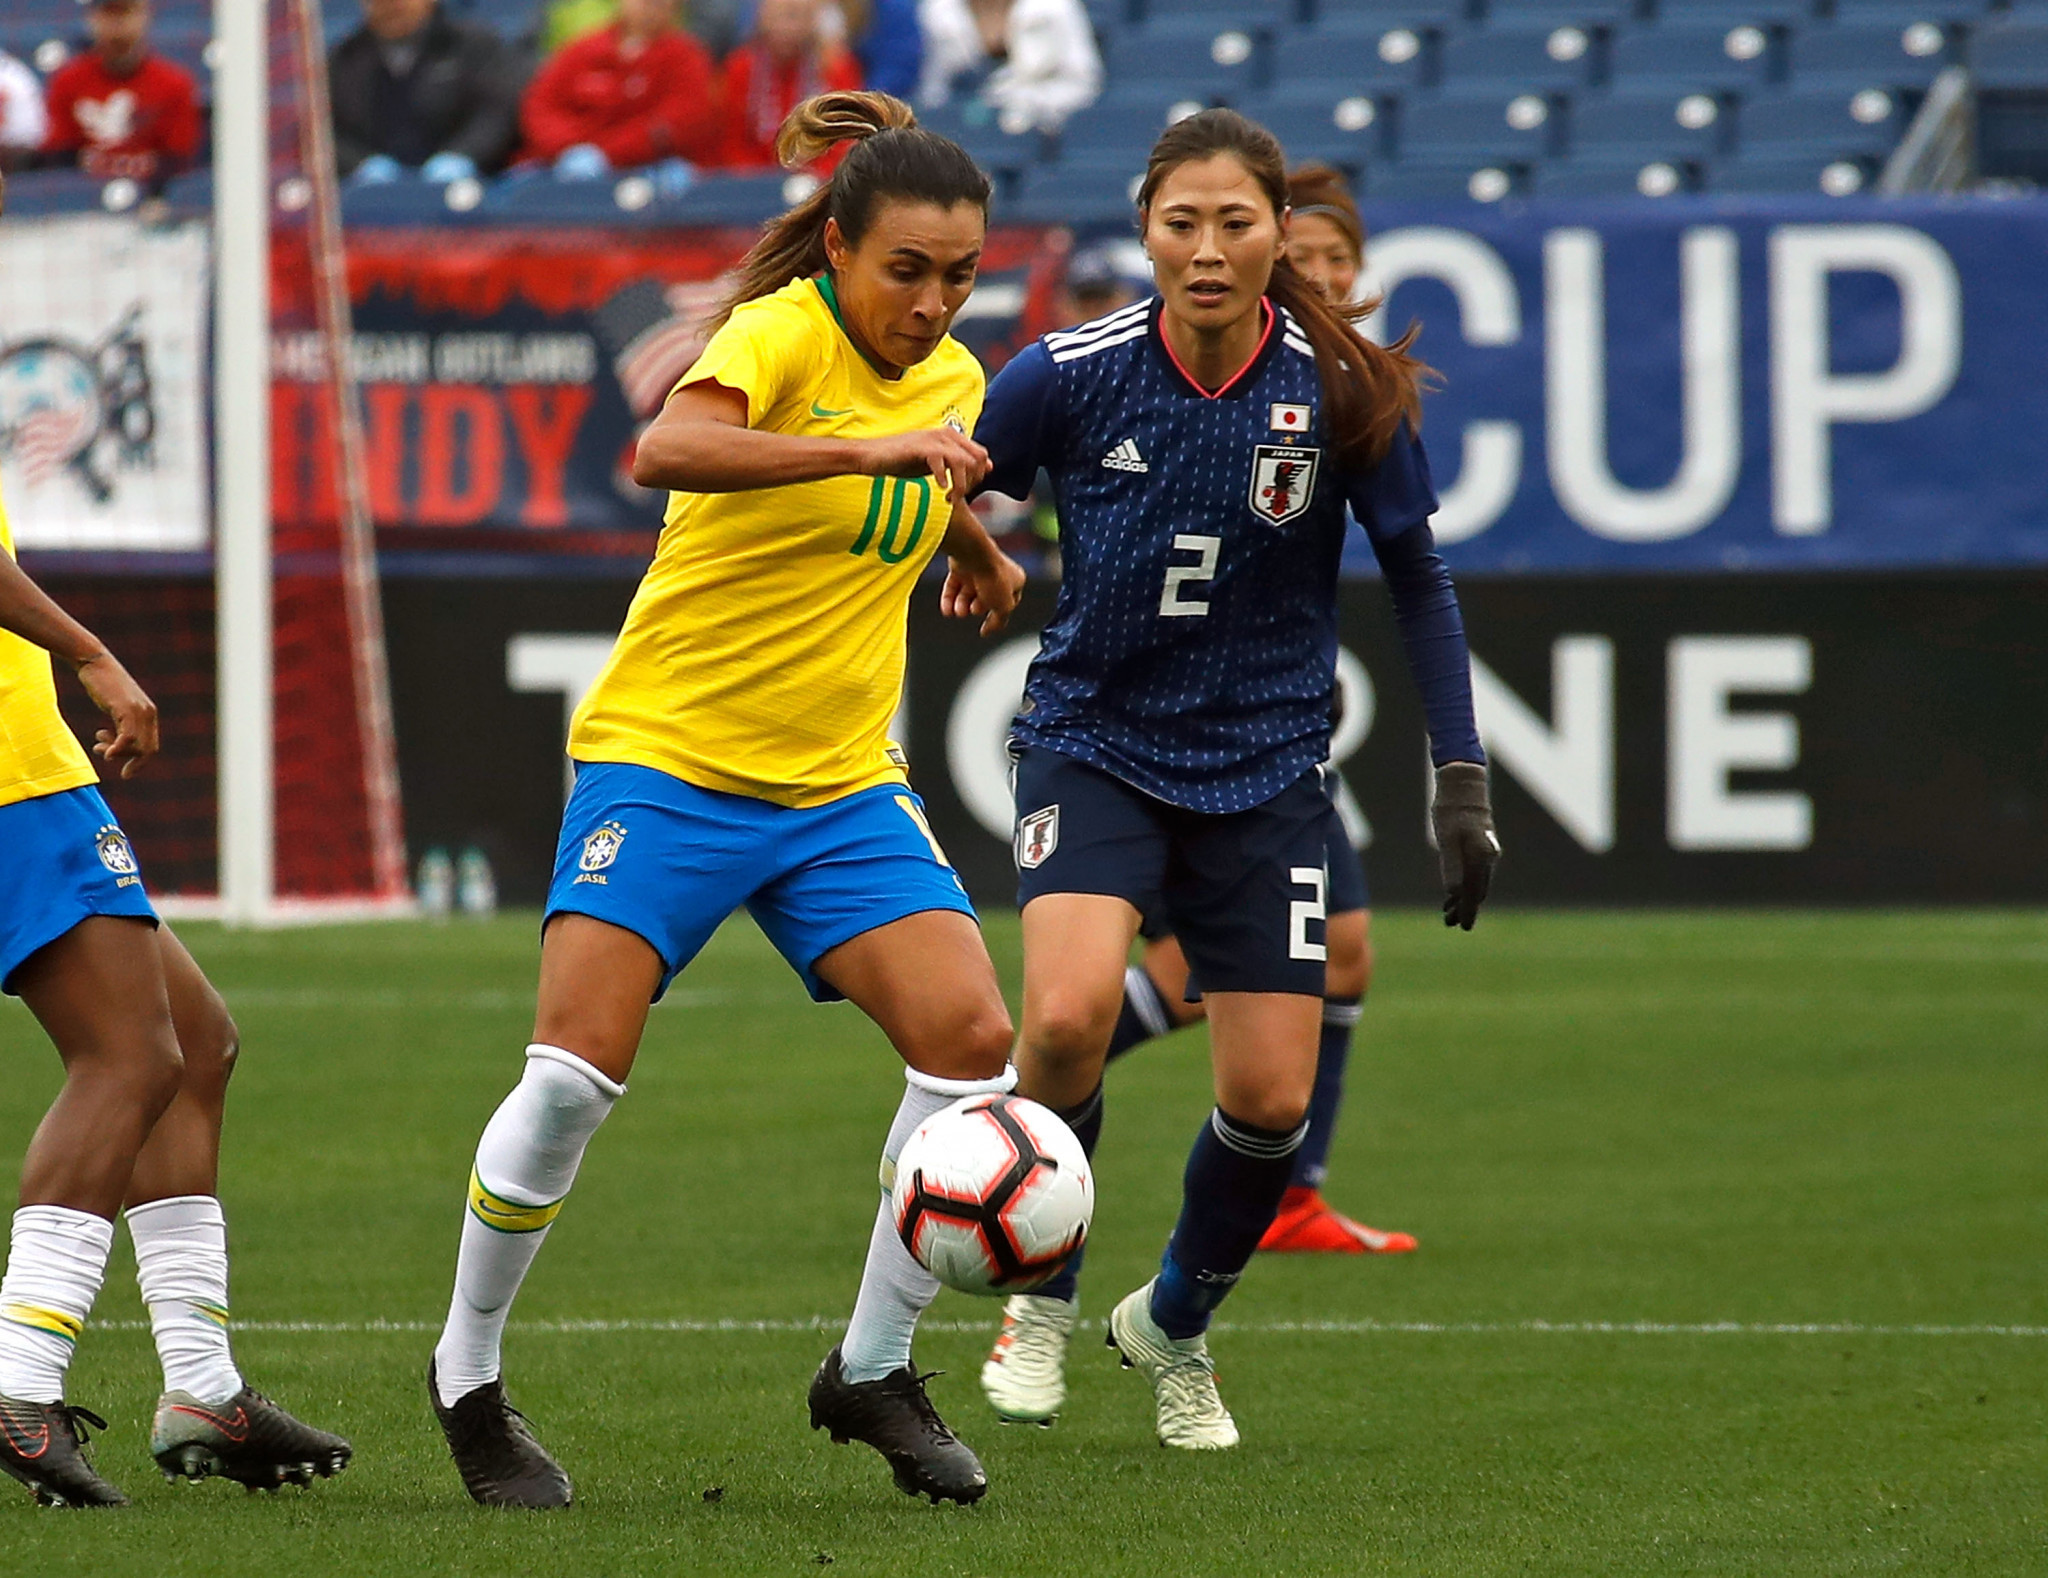 The Brazilian women's national football team has taken up teqball in the lead-up to this year's FIFA World Cup in France ©Getty Images